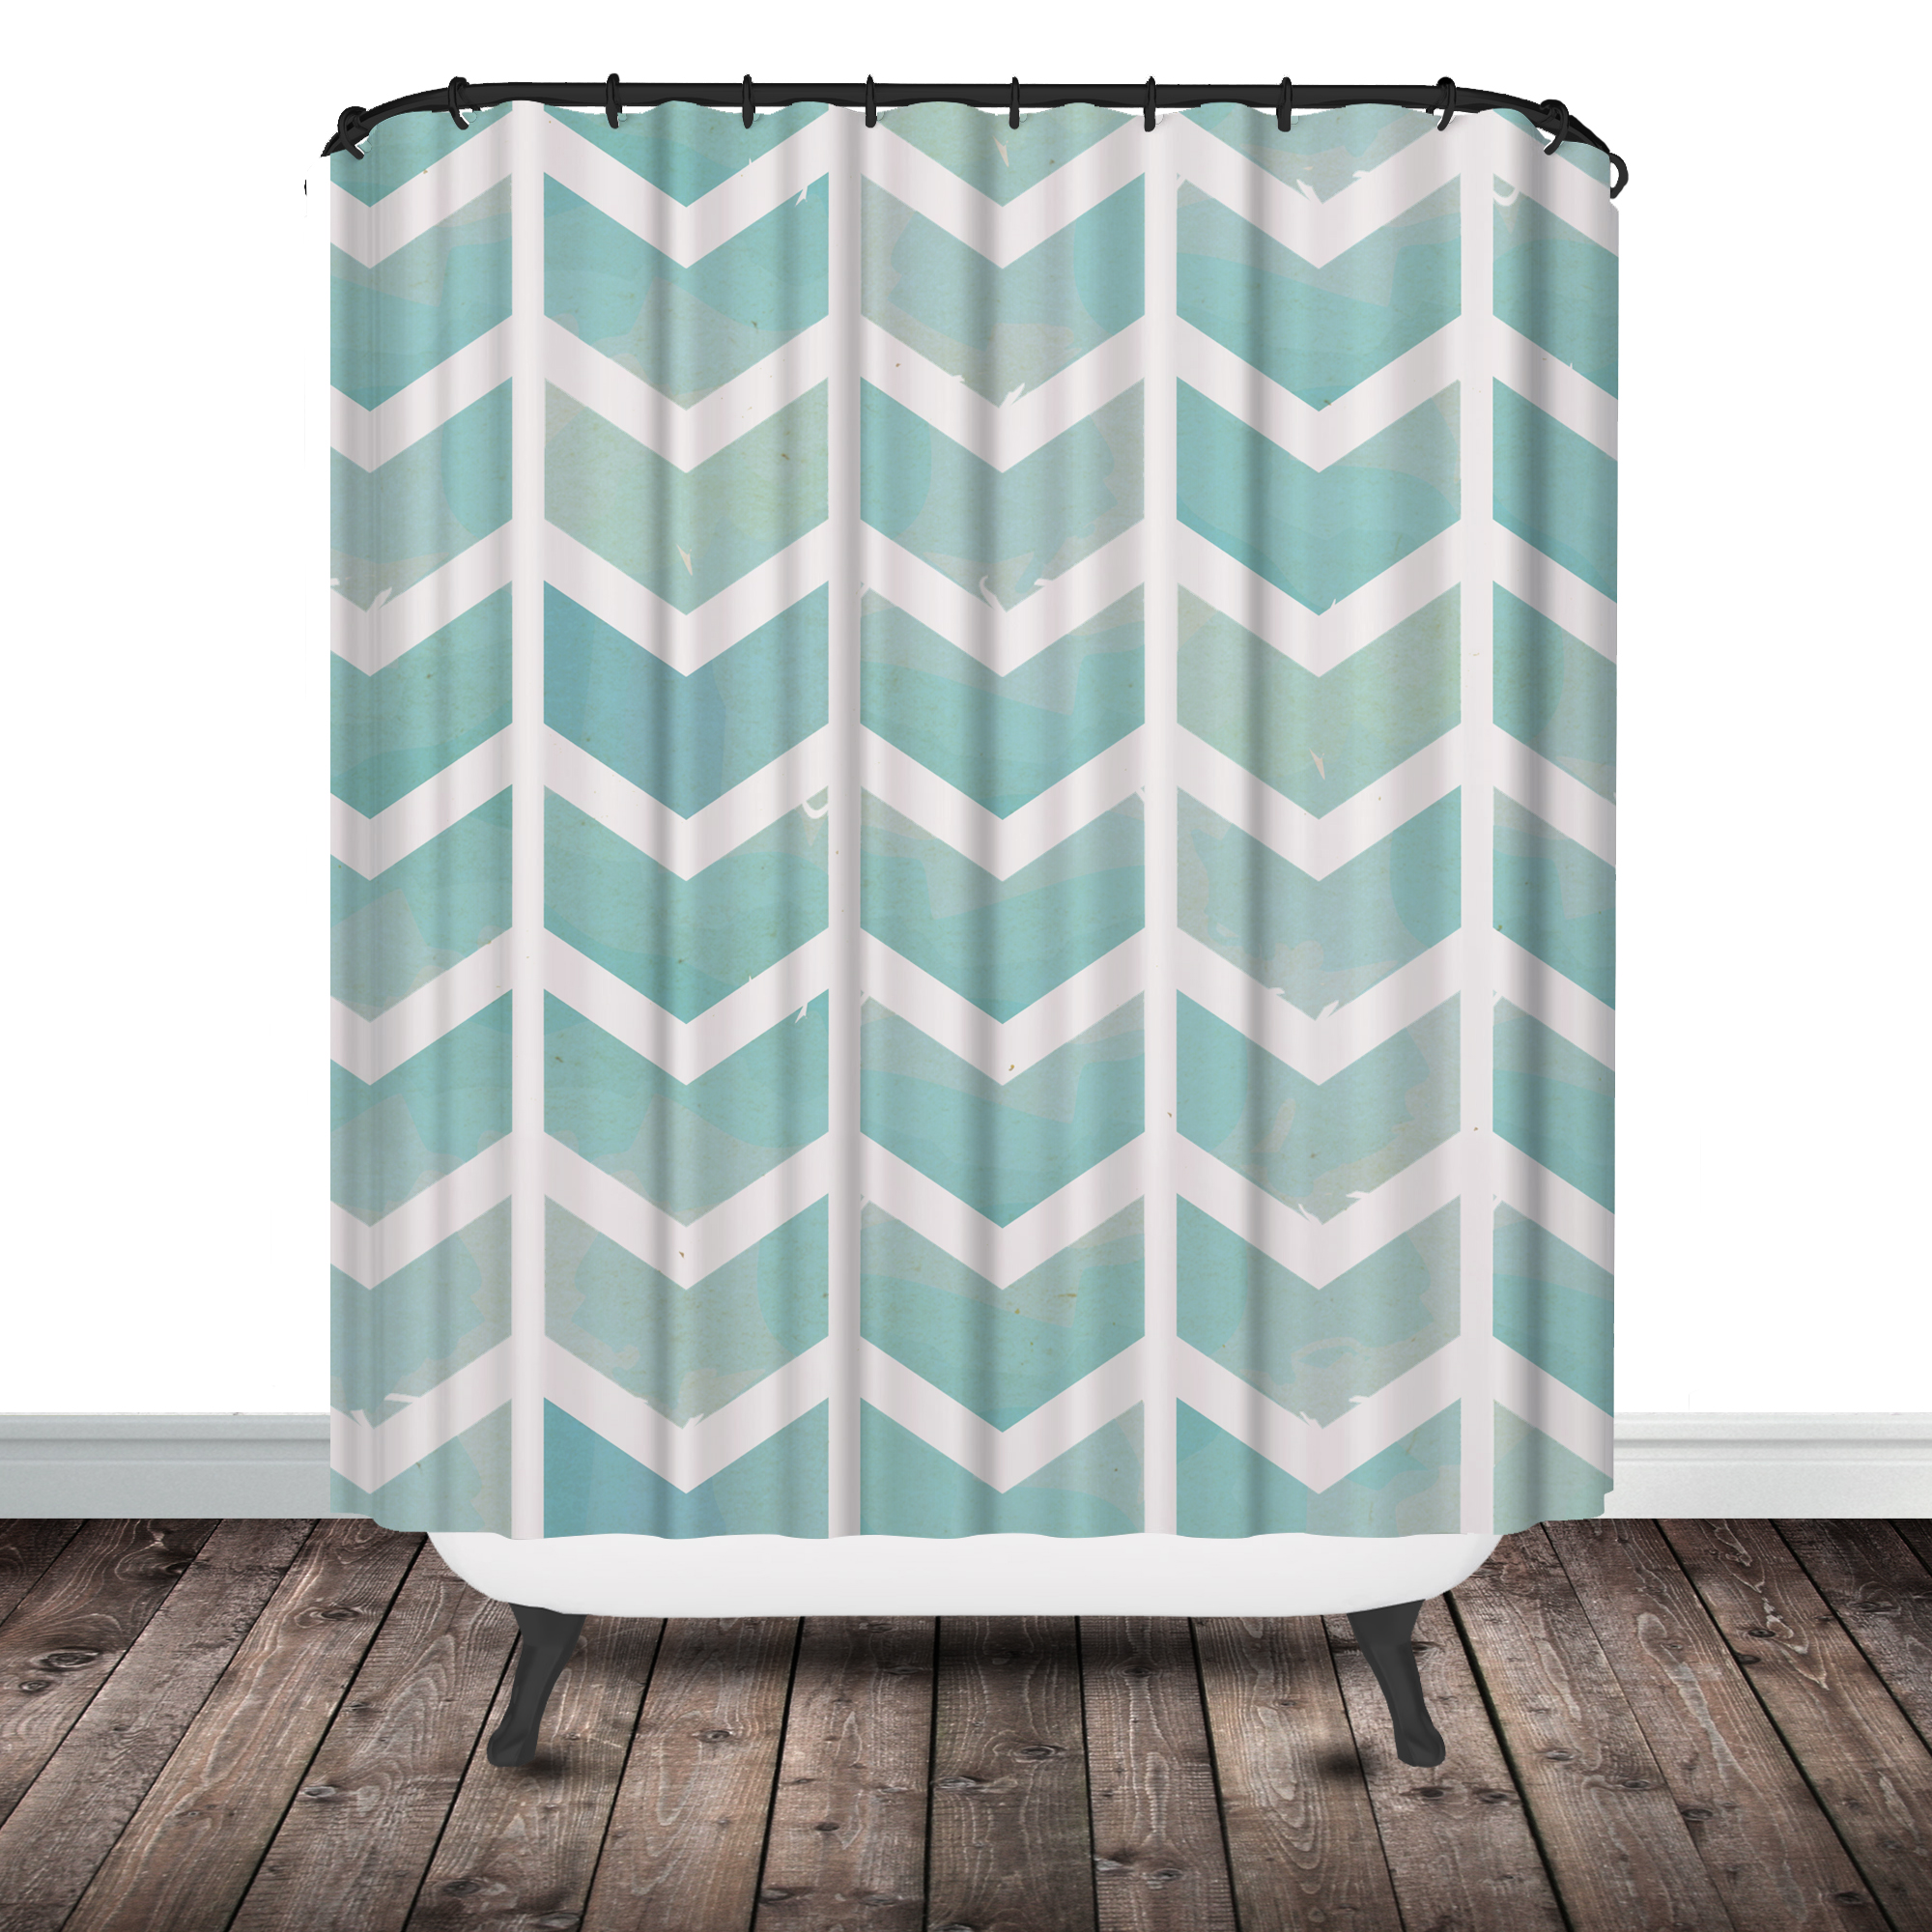 Dkny Bathroom Accessories Aqua Chevron Shower Curtain